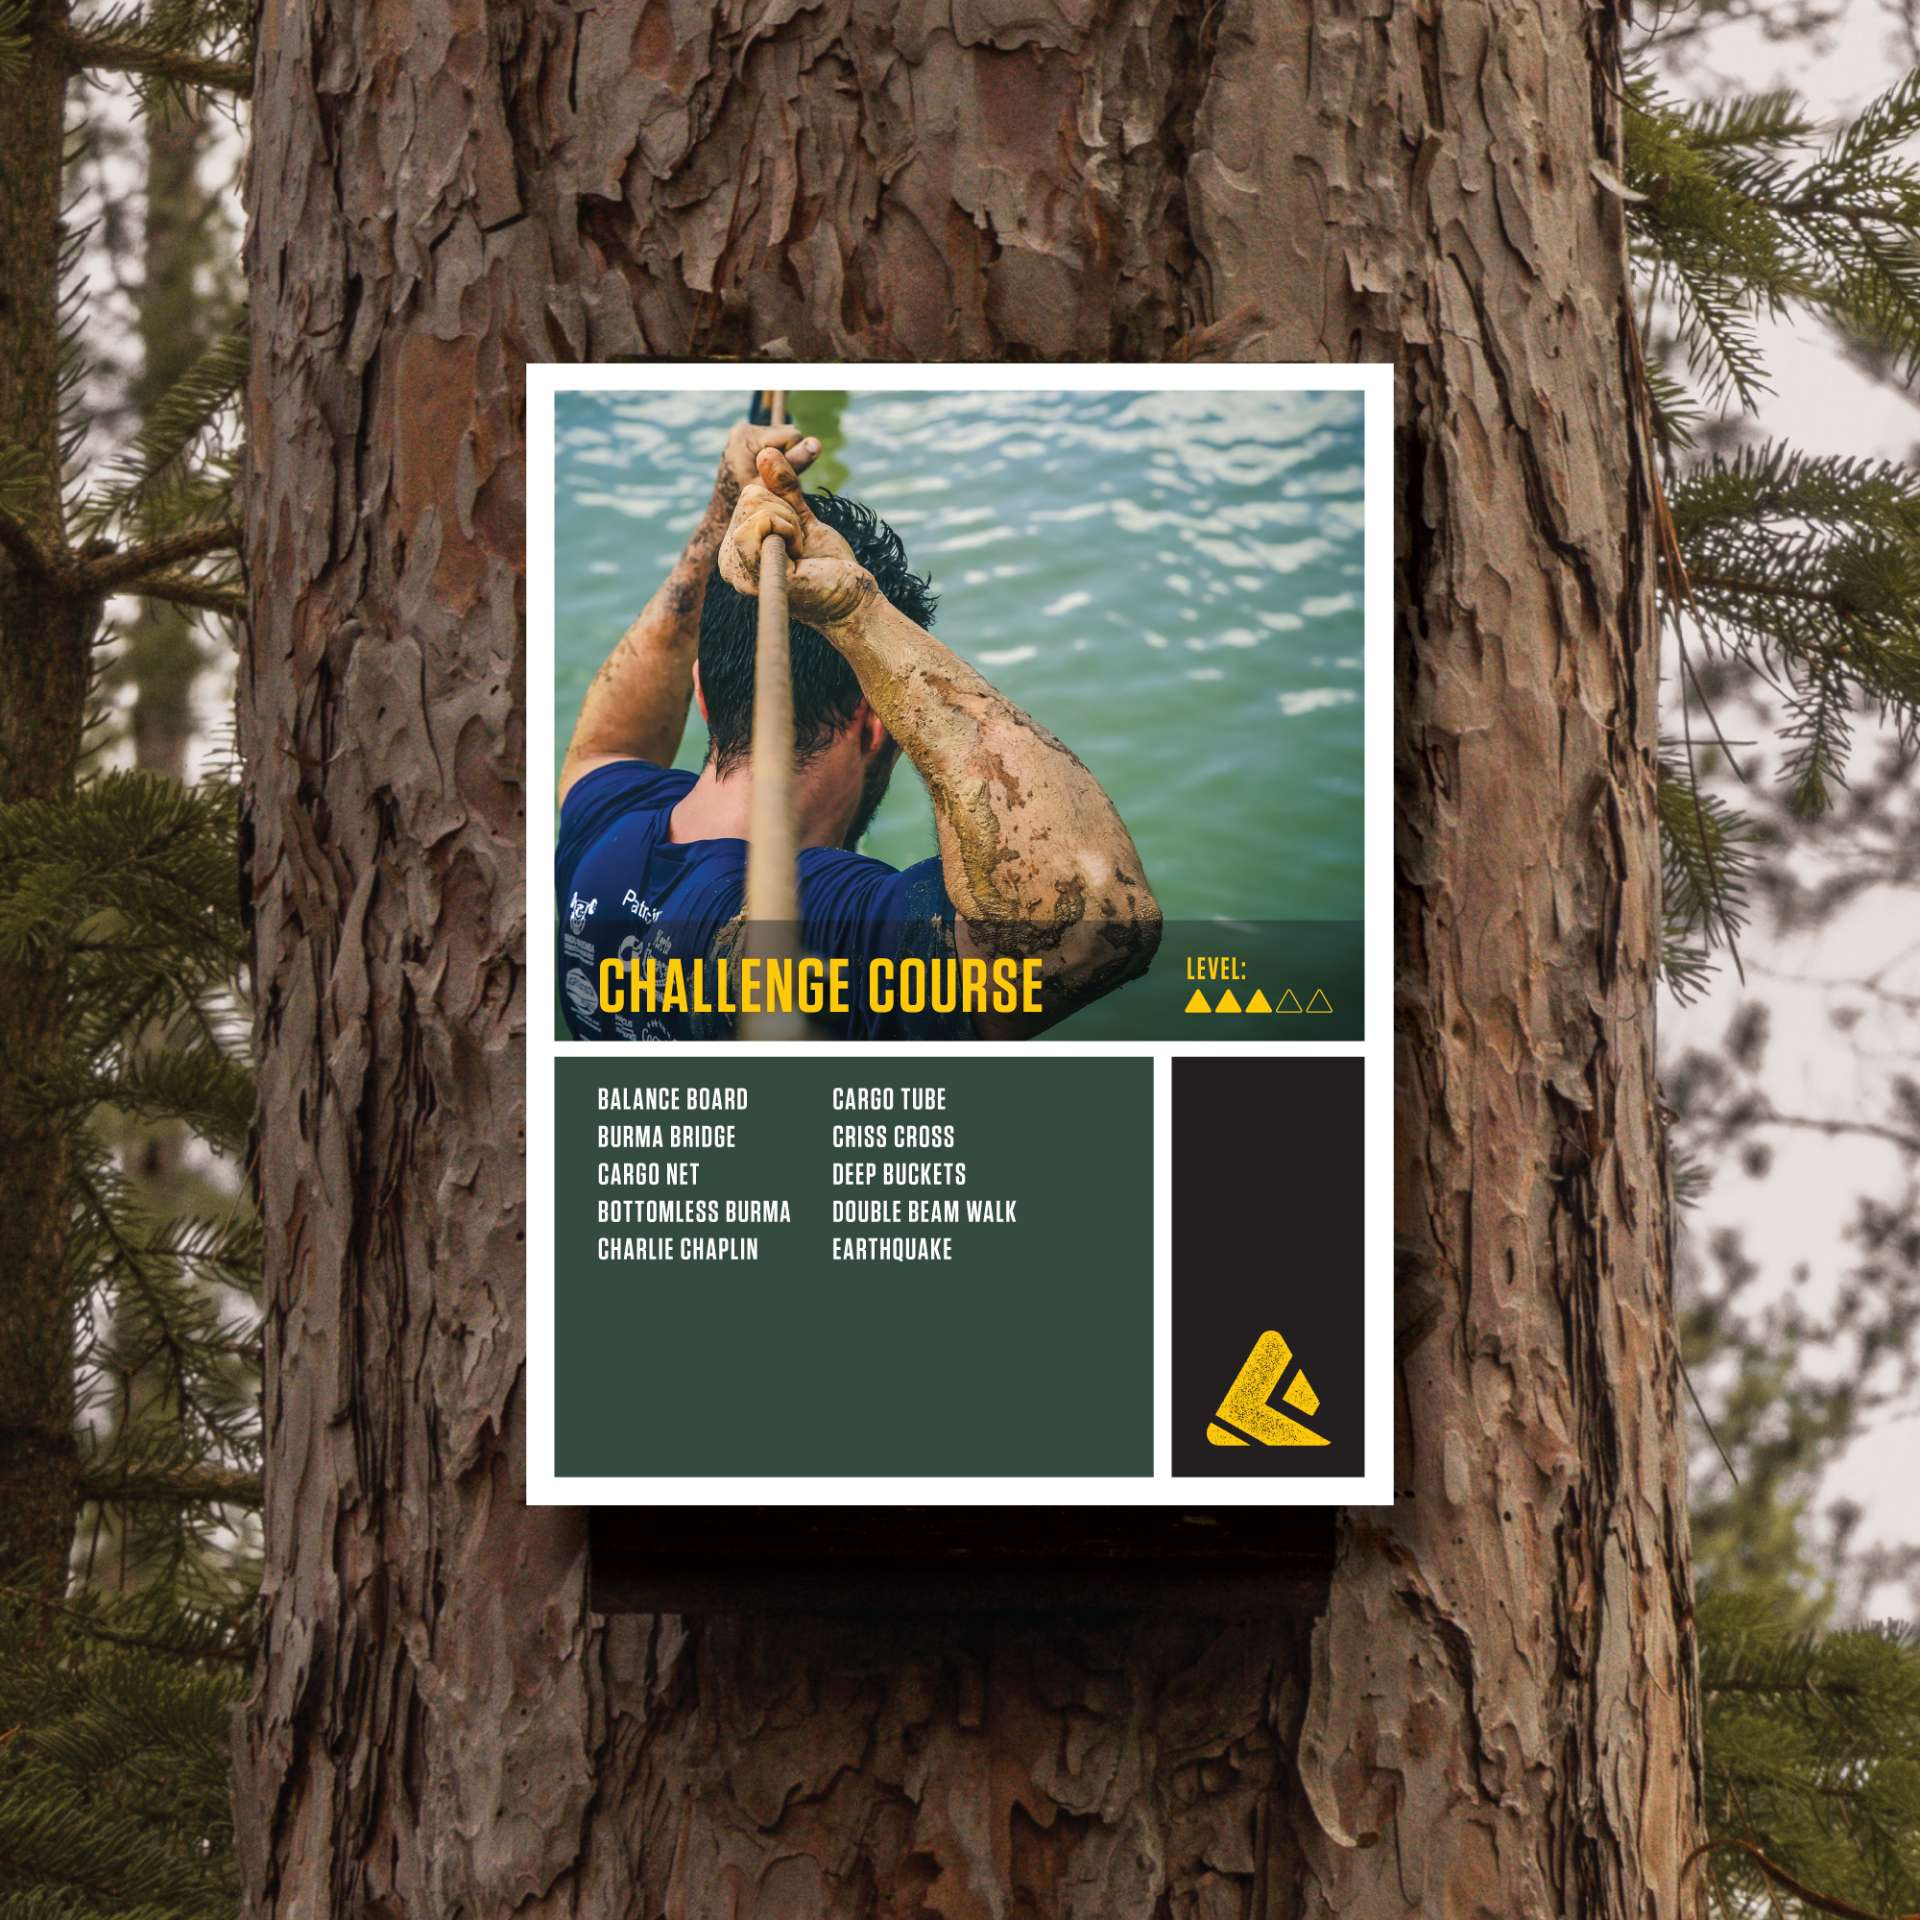 Challenge course signage for The Forge adventure park affixed to a tree